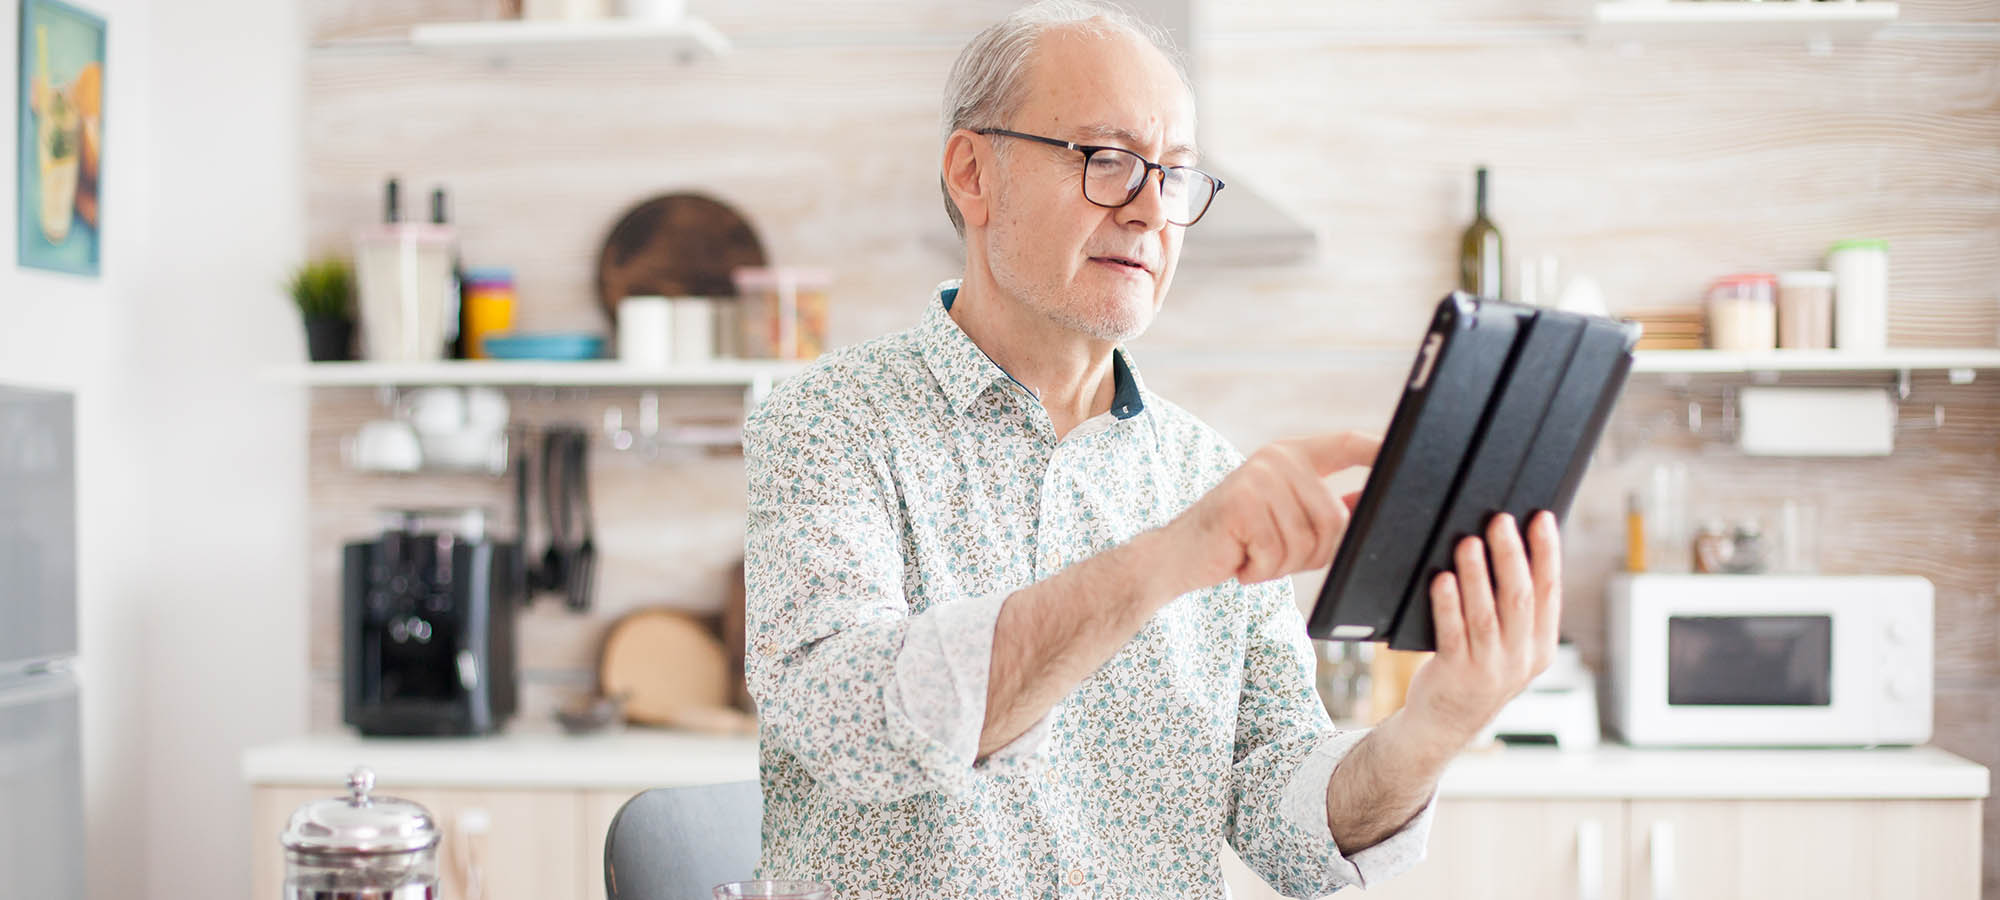 Happy elderly person with portable tablet PC in kitchen during breakfast. Senior person with tablet portable pad PC in retirement age using mobile apps, modern internet online information technology with touchscreen